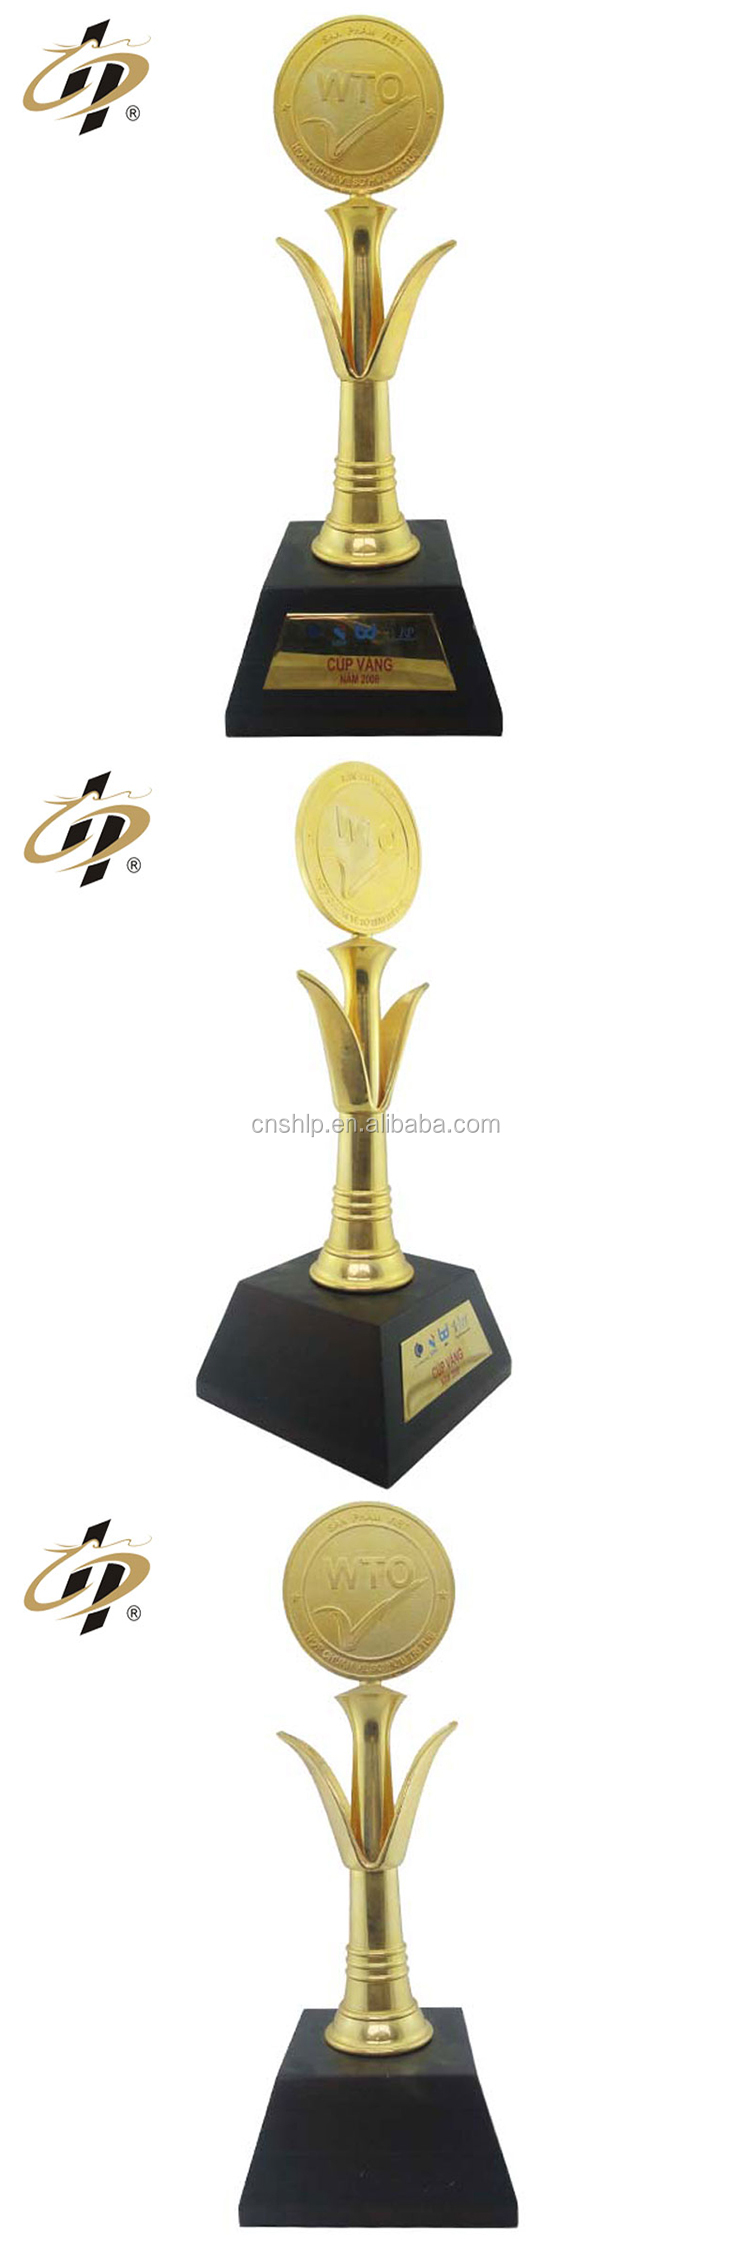 Bulk items zinc alloy big size sports metal gold trophy award with gift box